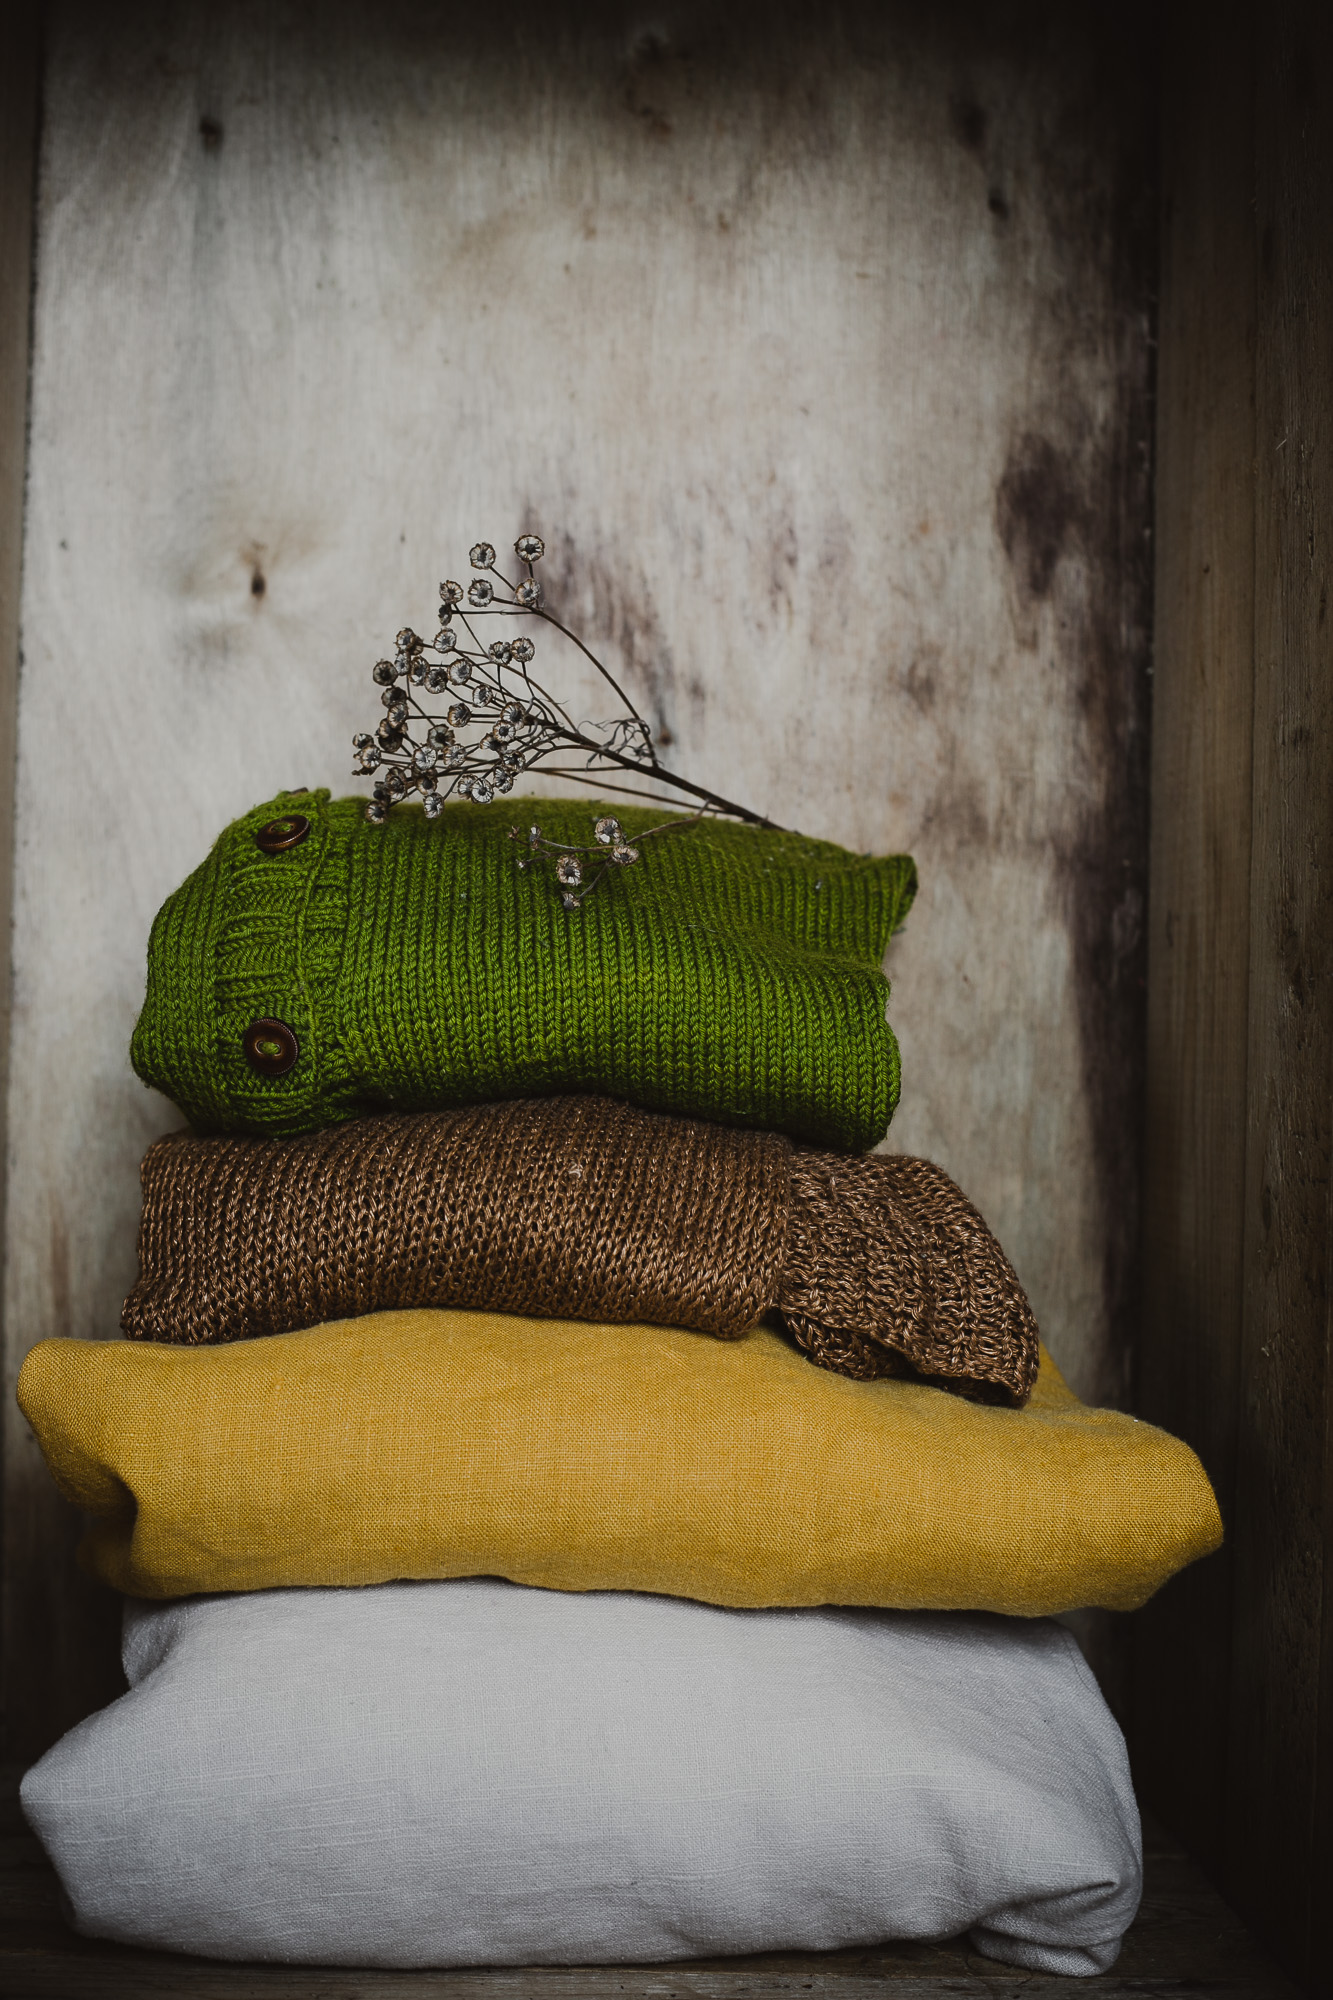 The Adagio Talk - observations on slow living, sustainable lifestyle and seasonality | The Adagio Blog | Why am I getting rid of most of my clothes